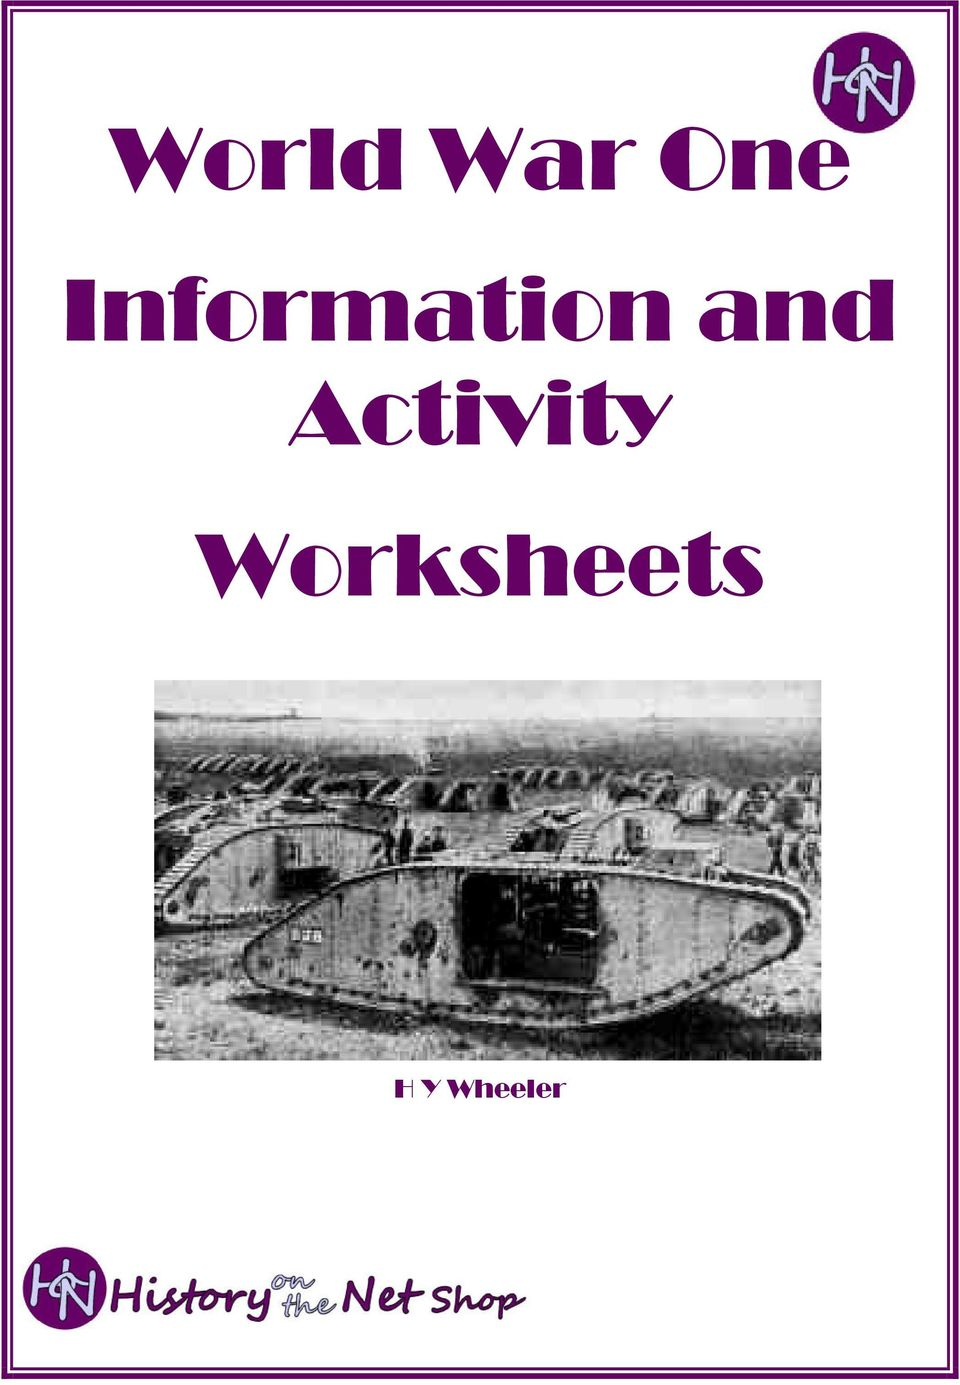 World War One Information And Activity Worksheets Pdf Ww1 Trenches Diagram On The Web Timeline British Trench 2 This Booklet Has Been Printed Sold By History Net To Be Used As A Teaching Resource Purchaser Is Entitled Photocopy These